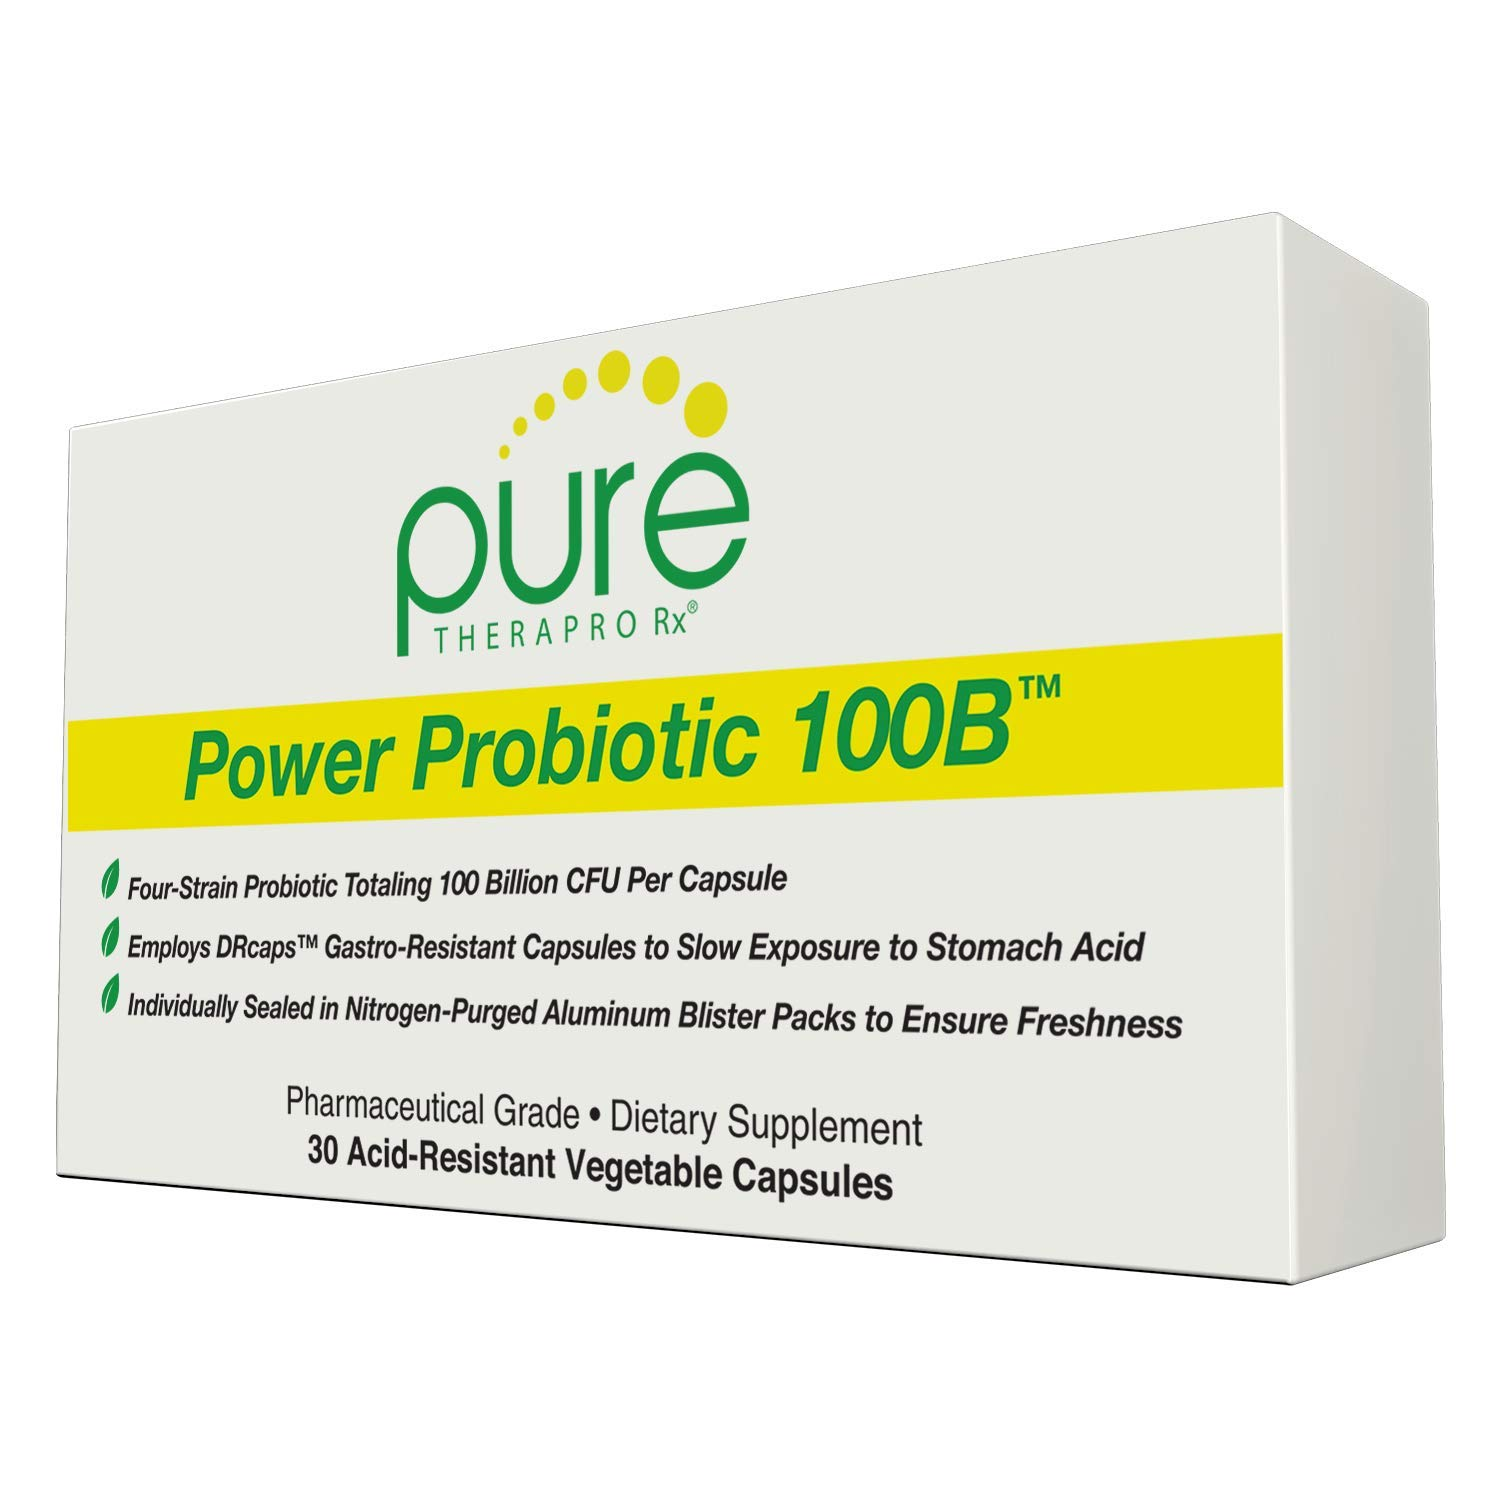 Power Probiotic 100B - 30 Acid-Resistant Capsules | 4 Proven Strains - 100 Billion CFU/Capsule | Sealed in Nitrogen-Purged Aluminum Blister Packs to Insure Freshness | NO Refrigeration Required